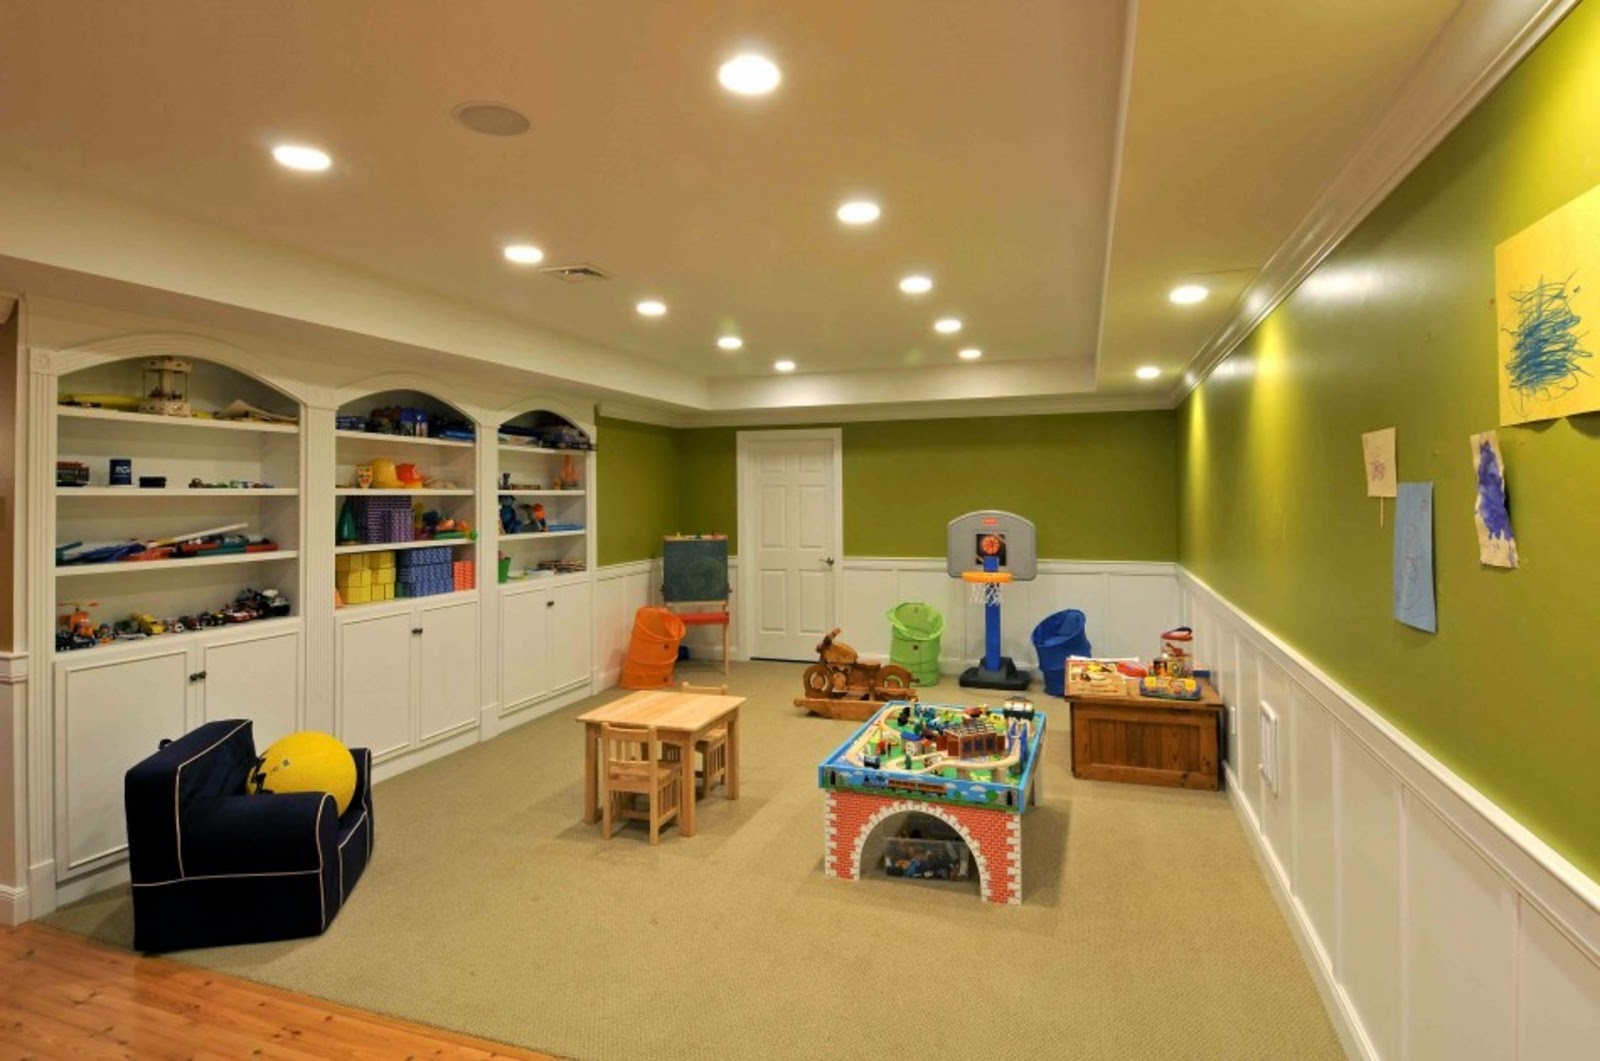 16 creative basement ceiling ideas for your basement instant knowledge - Finished basements ideas ...